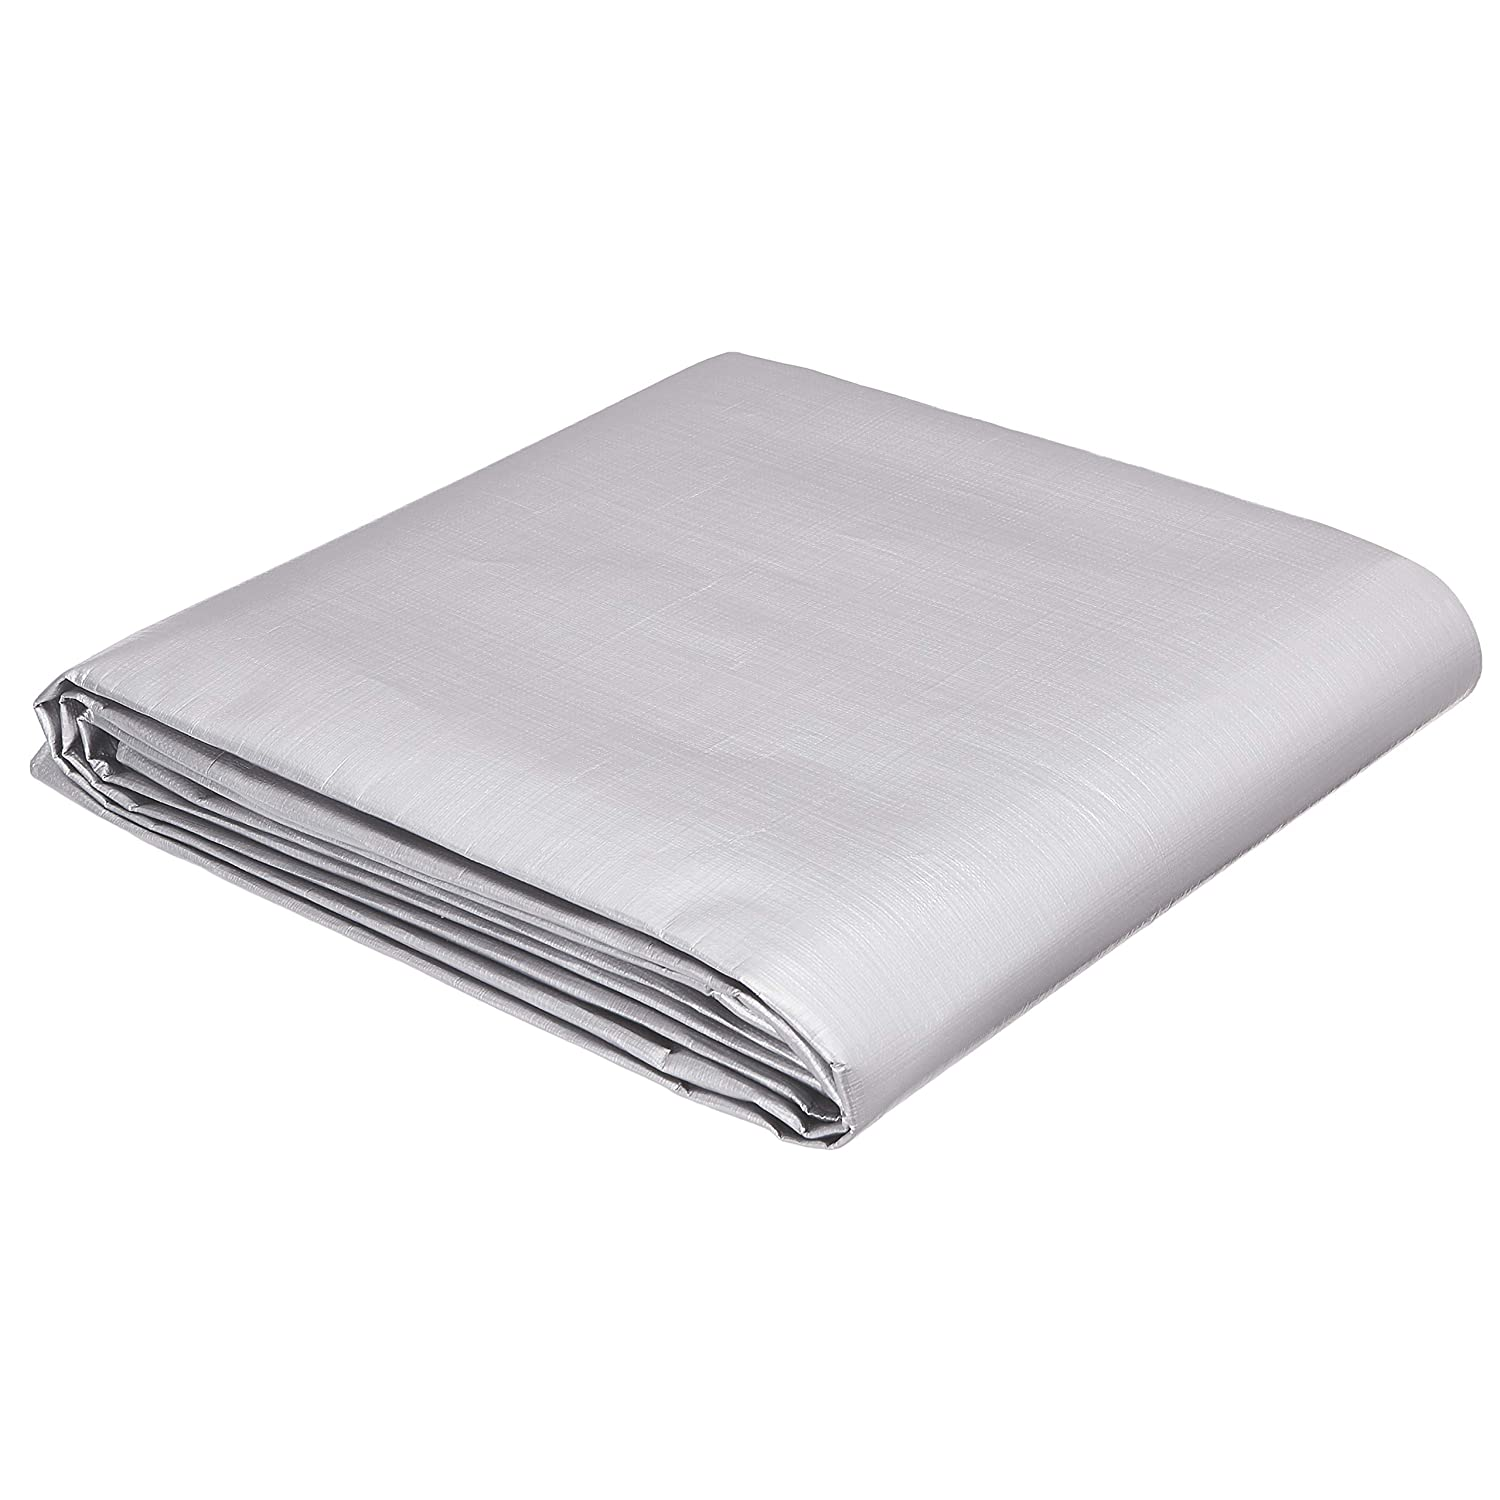 AmazonCommercial Multi Purpose Waterproof Poly Tarp Cover, 10 X 12 FT, 16MIL Thick, Silver/Black, 2-Pack